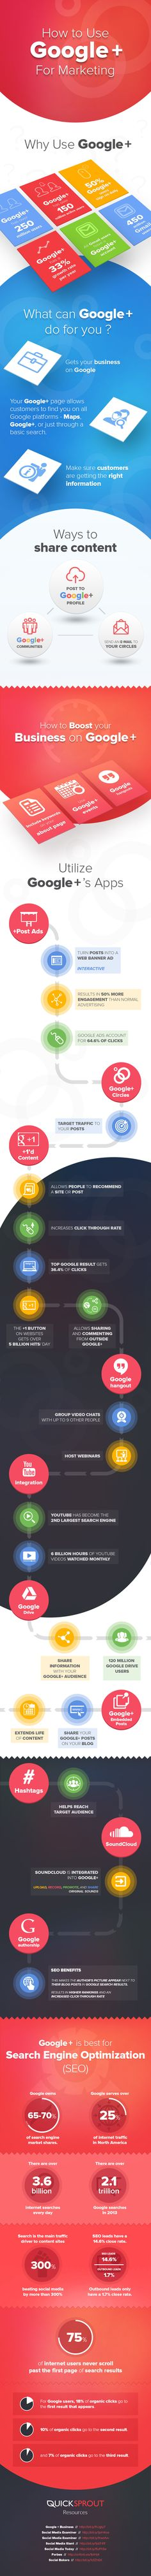 Infografía de cómo integrar Google Plus en tu estrategia de marketing para Redes Sociales. How To Incorporate GooglePlus Into Your Social Media Marketing Strategy [Infographic]